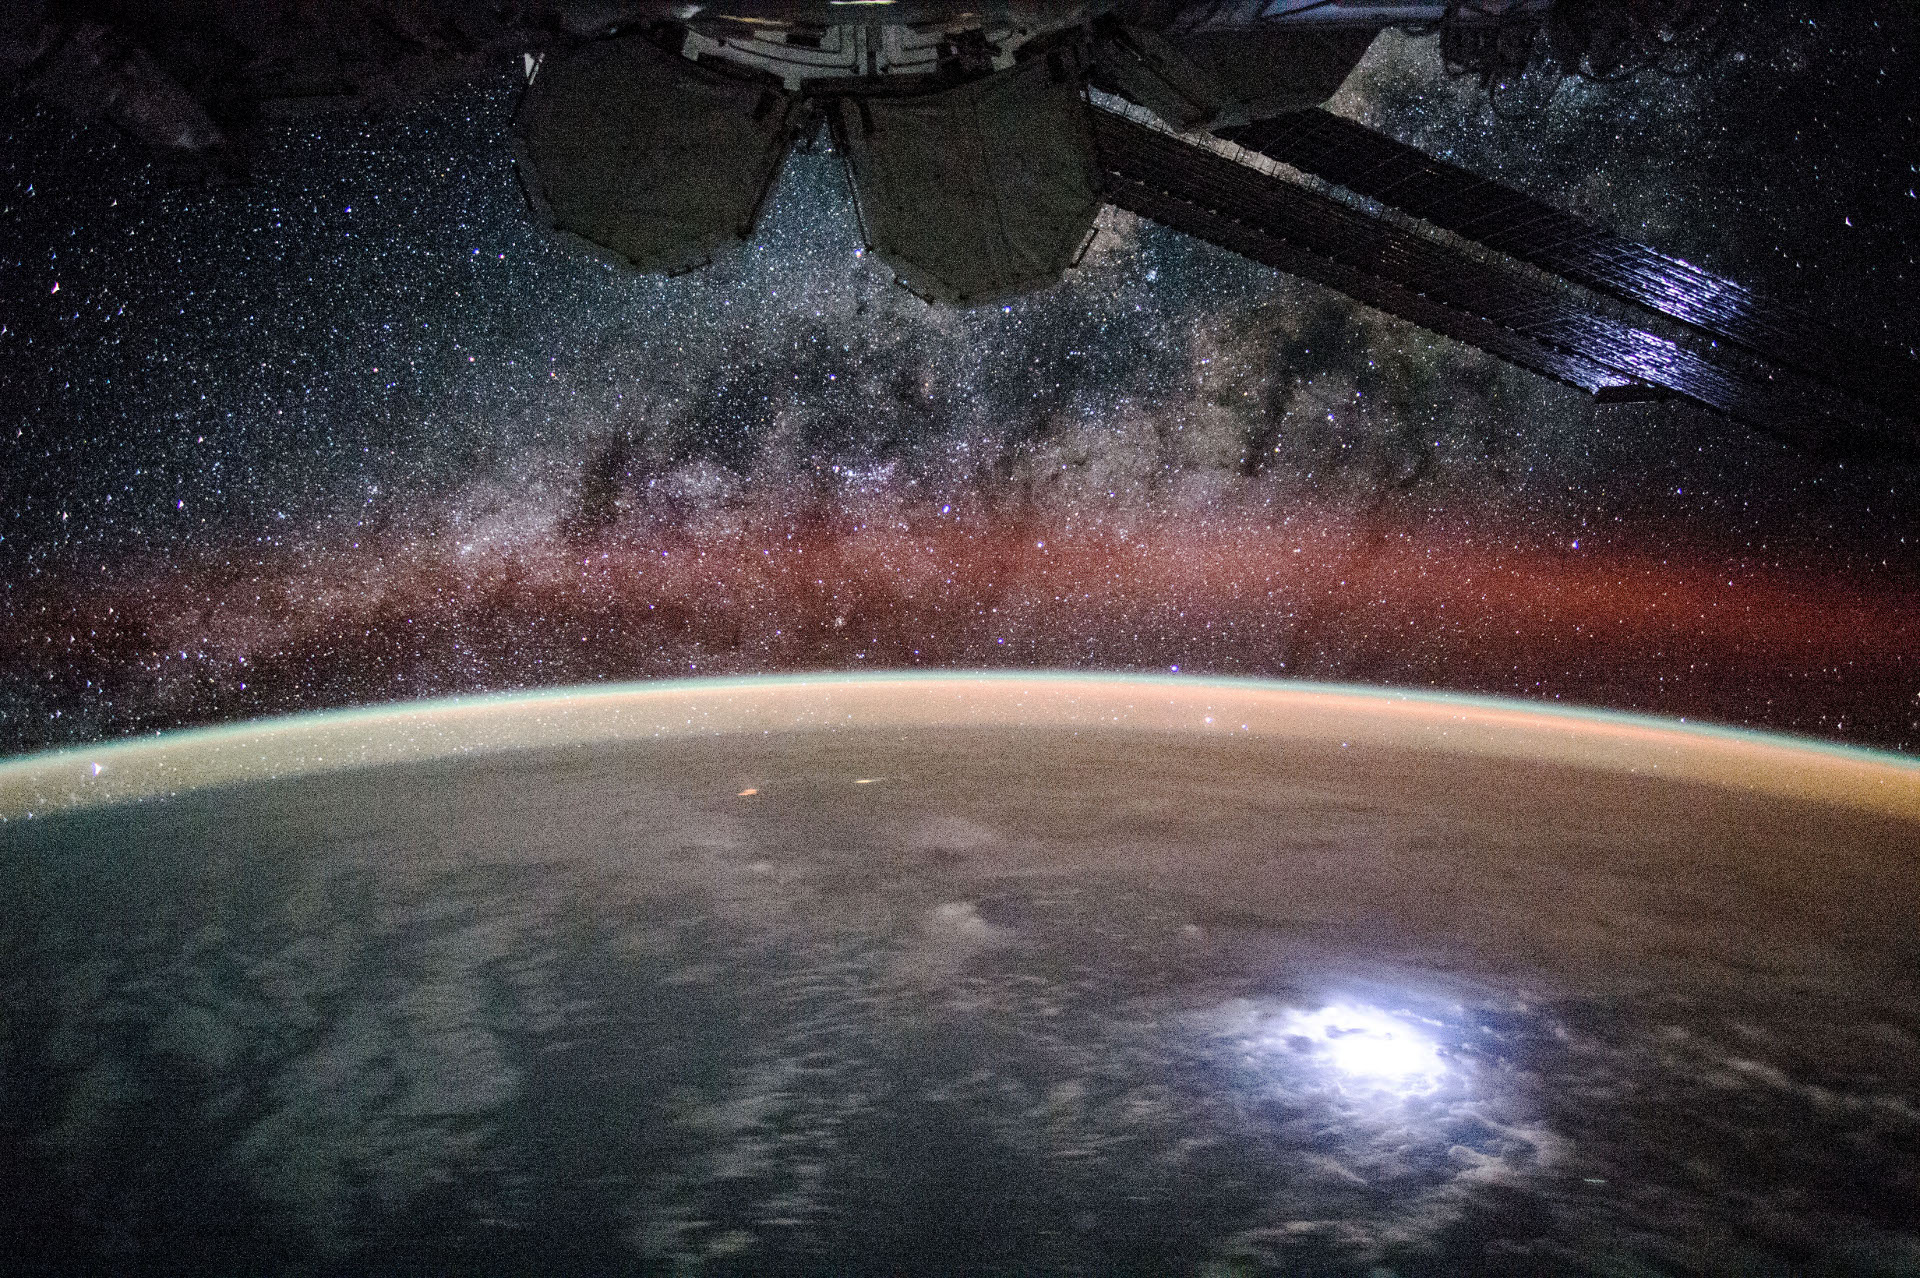 ISS - Voie lactée - Milky Way - Stars - ISS044-E-45215 - International Space station